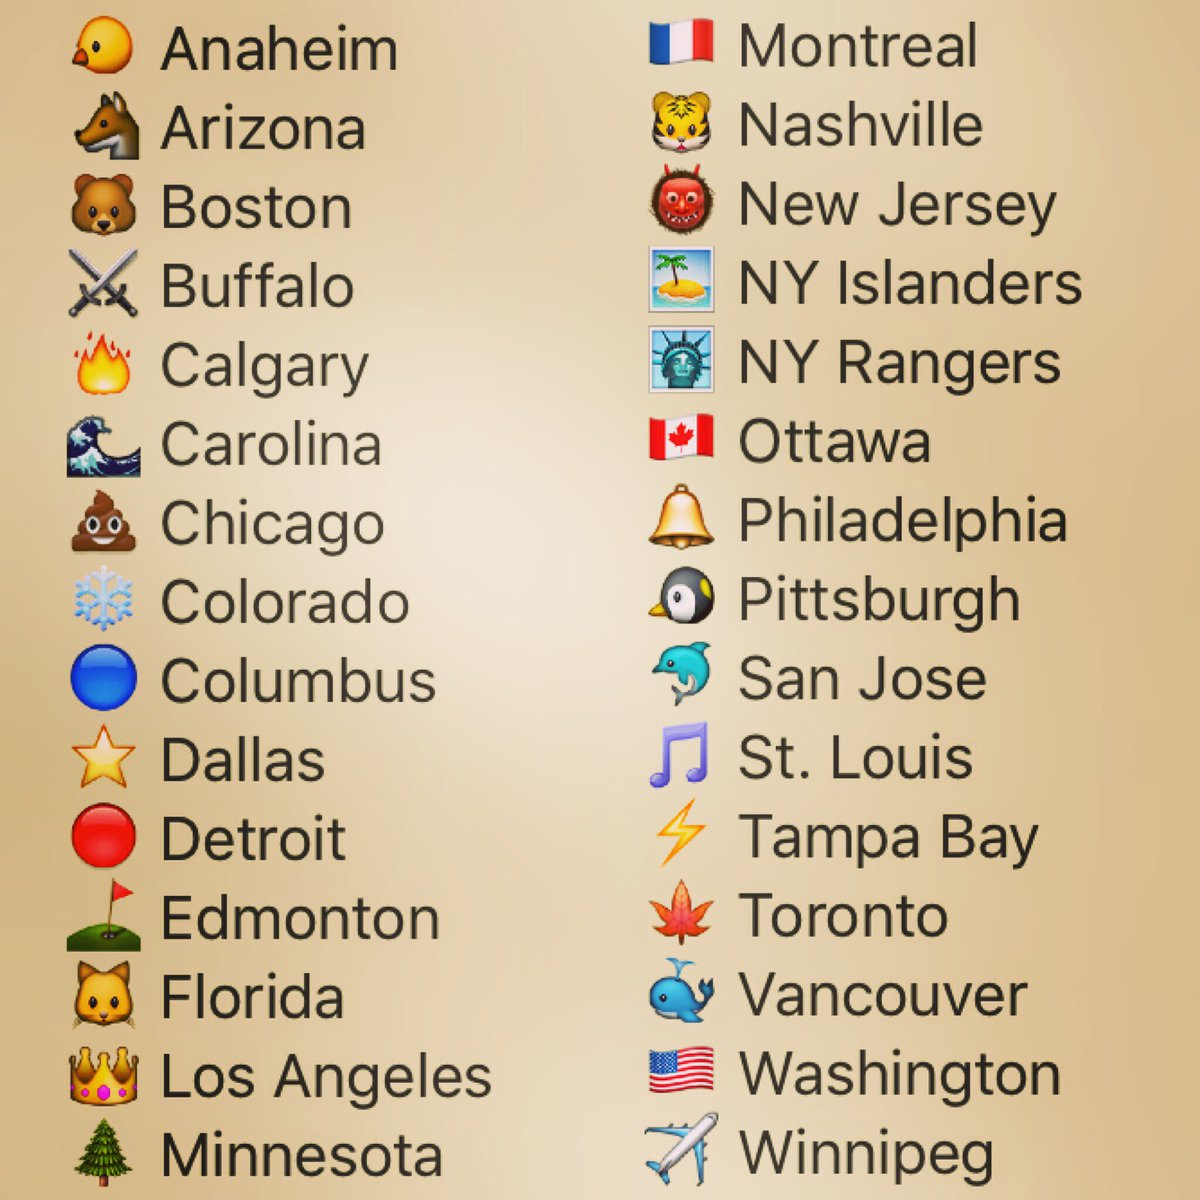 Who says there are no hockey emojis? https://t.co/XkC2OnjhJZ